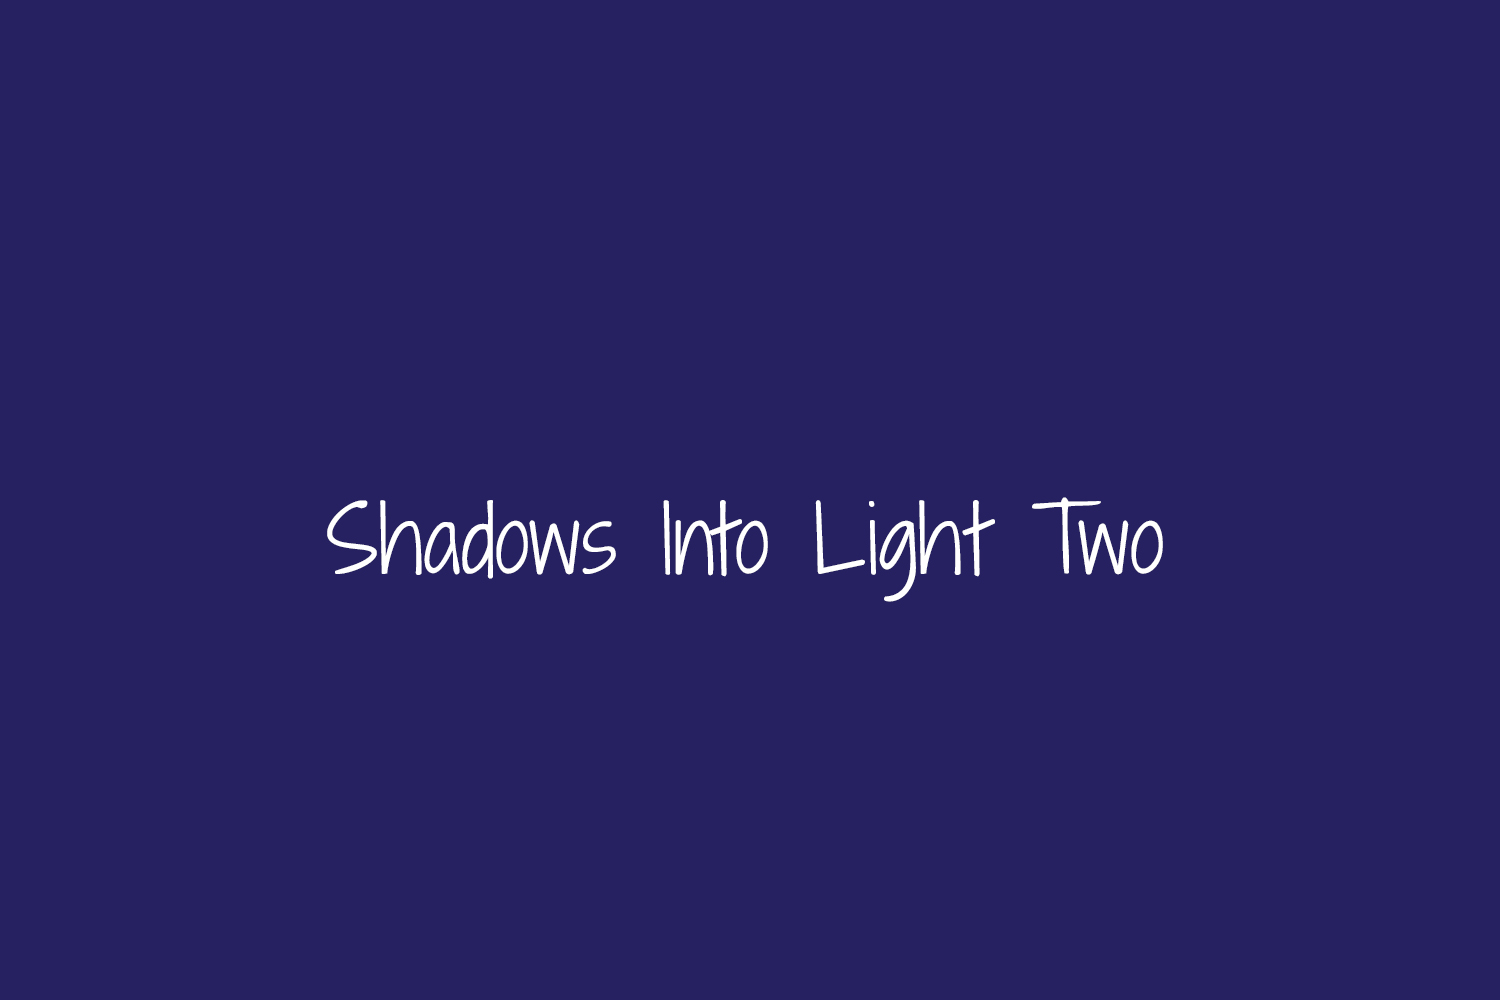 Shadows Into Light Two